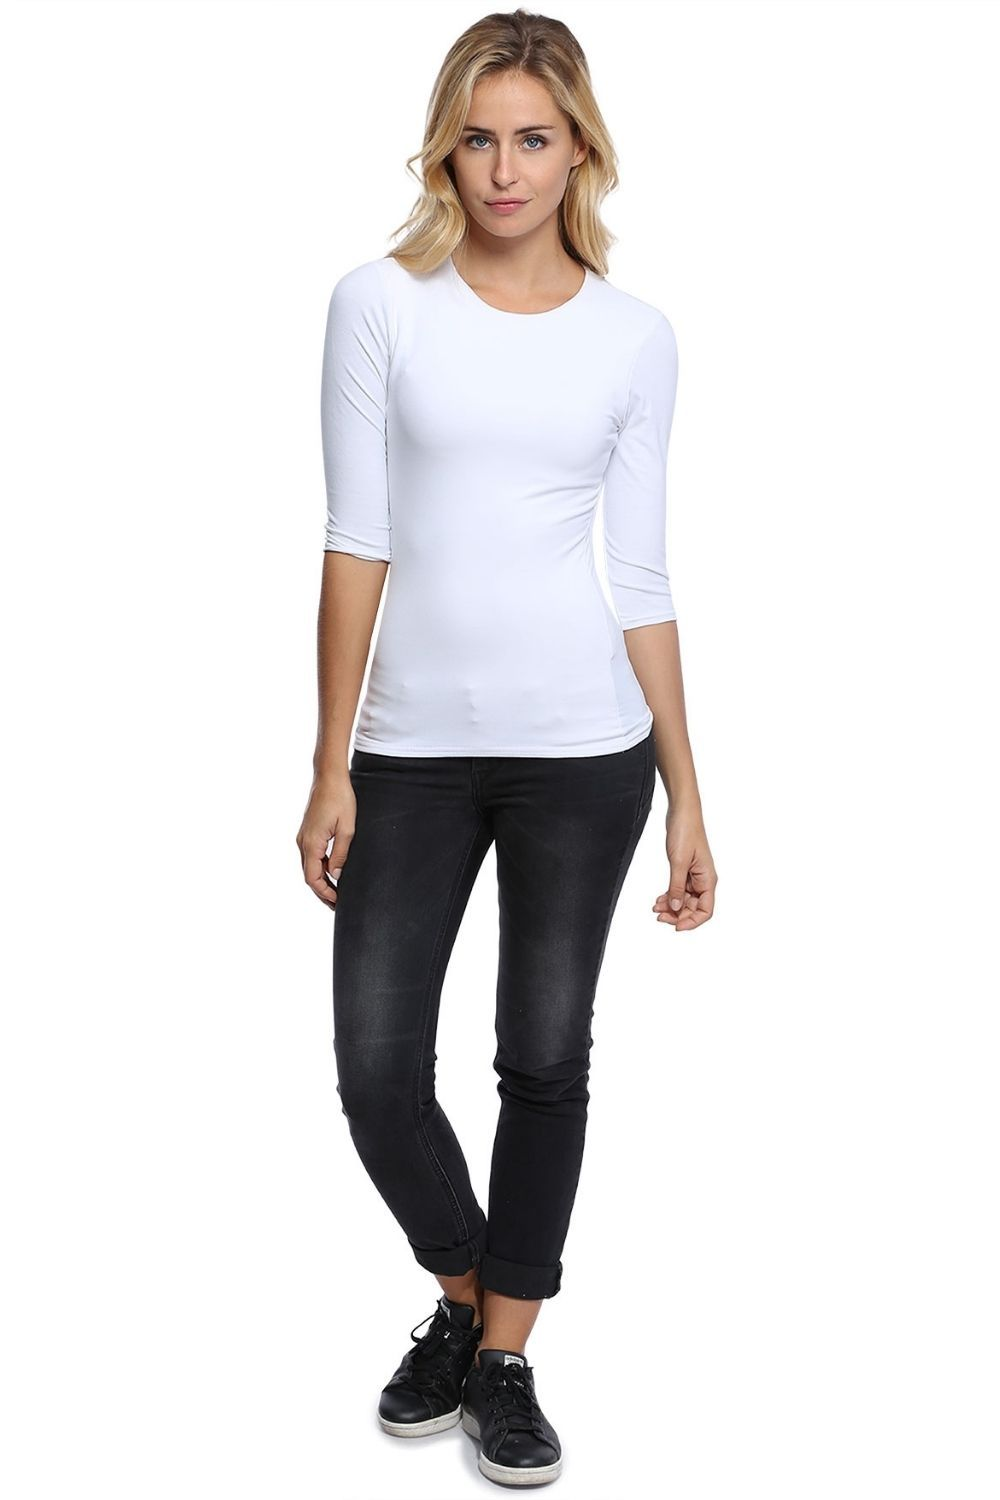 Kate Mid Length 3/4 Length Sleeve Tshirt in White